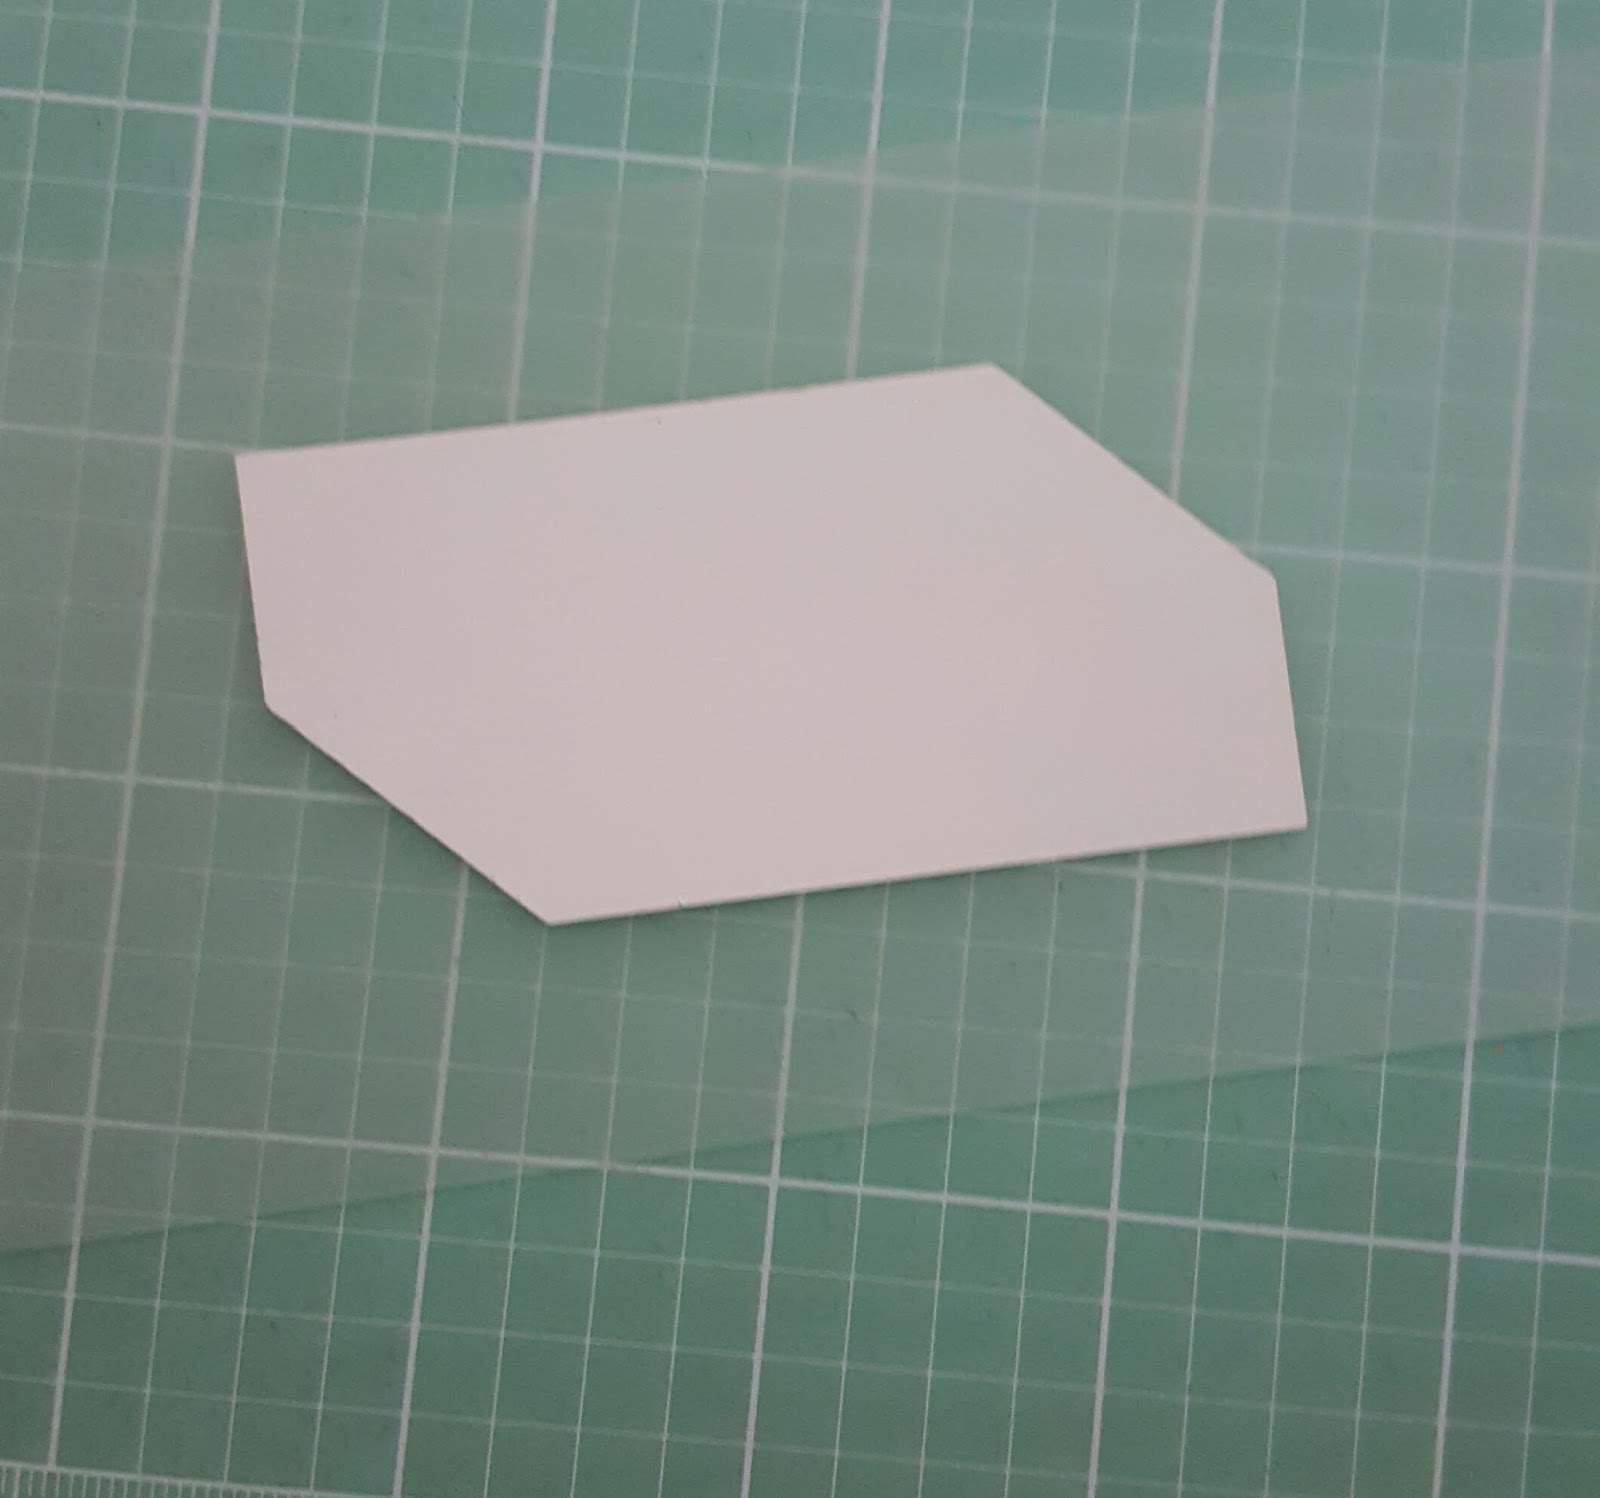 Lilabelle lane easy diy template tutorial english paper piecing take your add a quarter ruler and line the little lip of the ruler against the edge of the paper shape with your rotary cutter and ruler carefully work pronofoot35fo Images